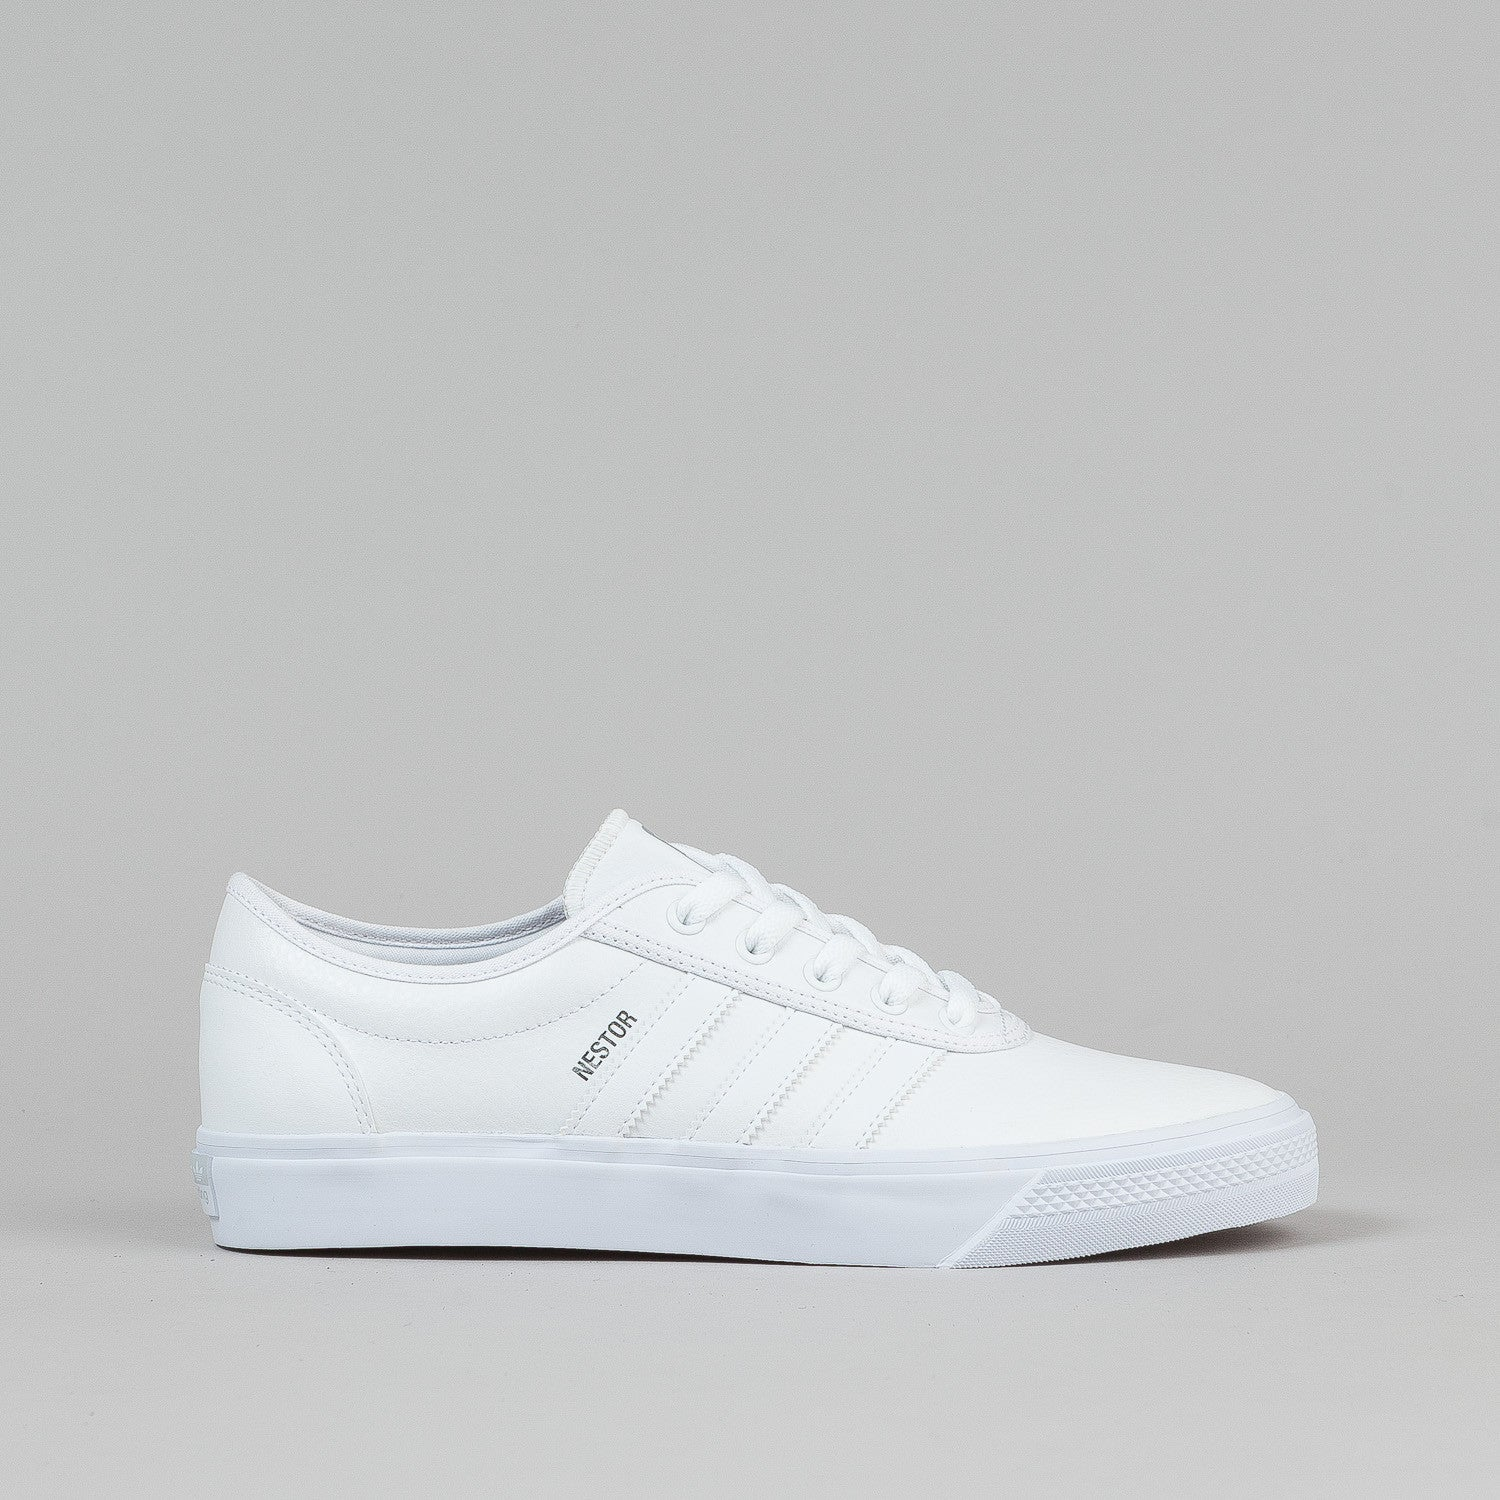 Adidas Adi Ease 'Nestor' Shoes